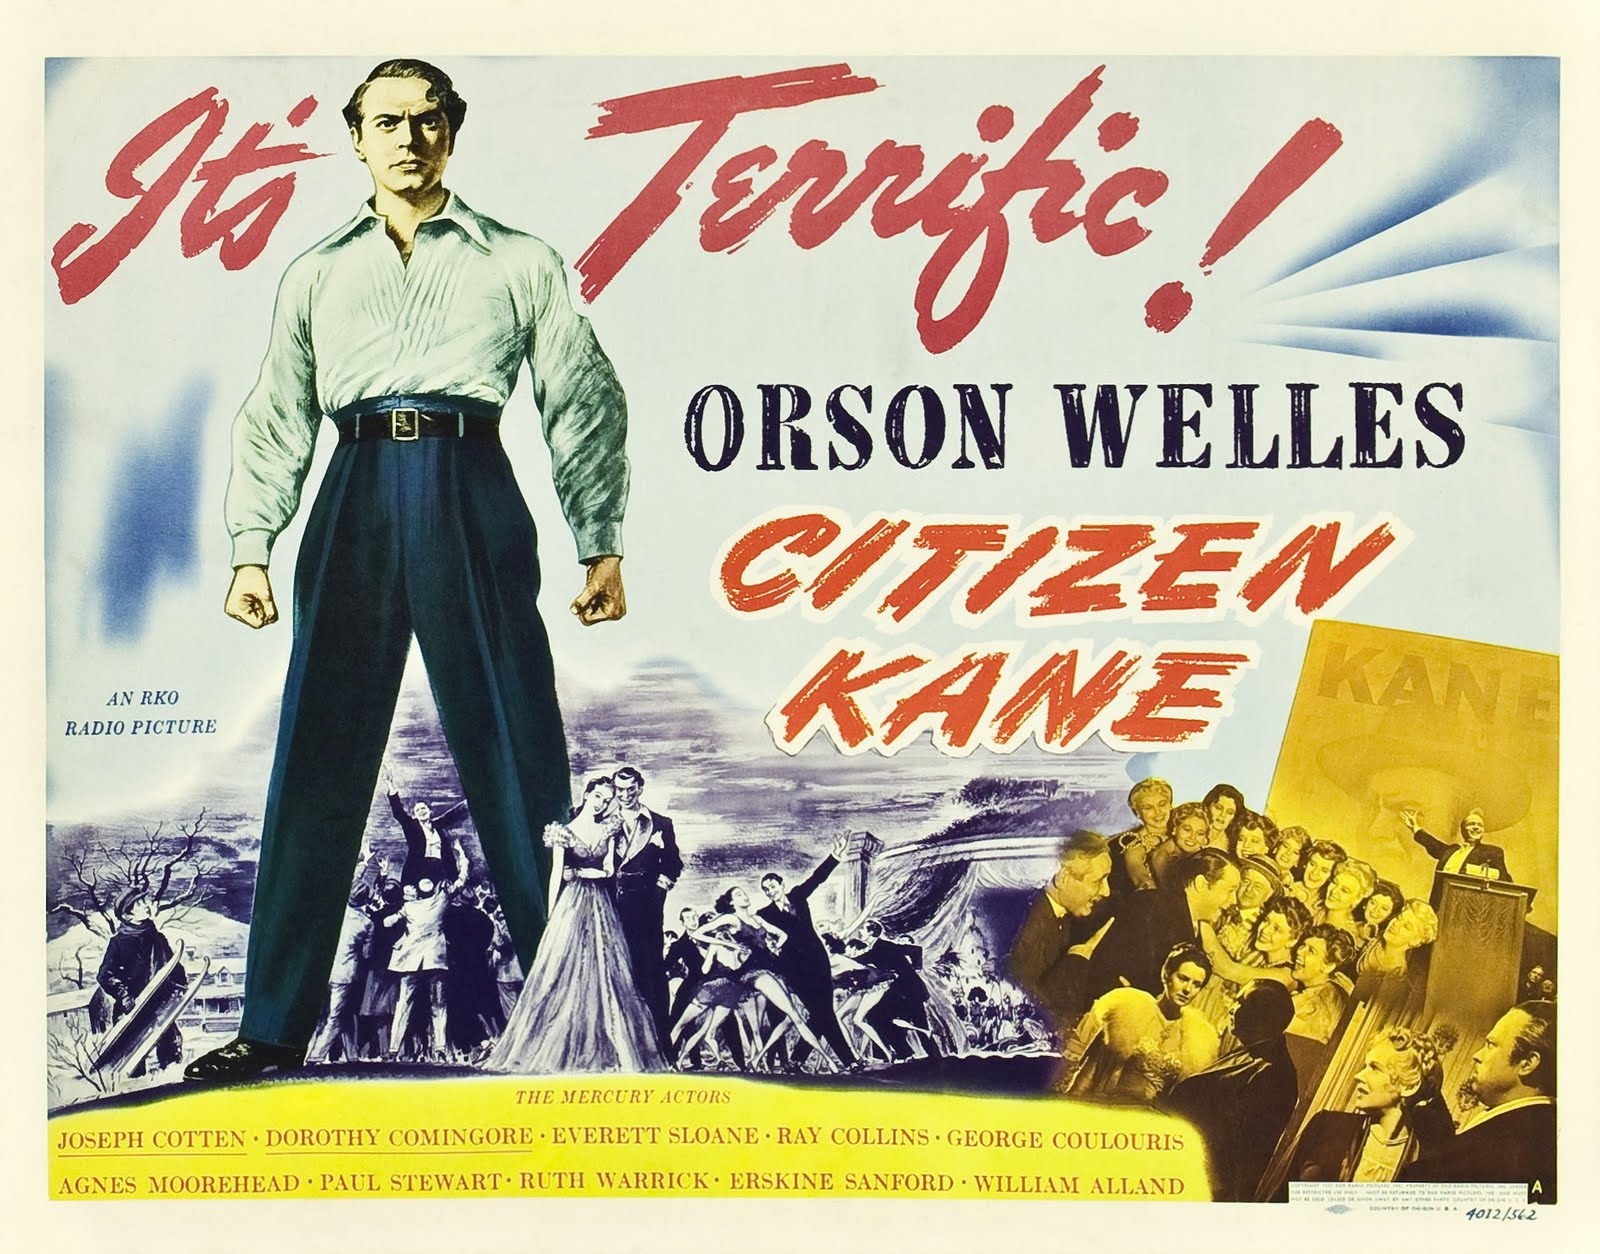 TCM - Citizen Kane, January 8th, 1941: Hearst vs. Welles ...